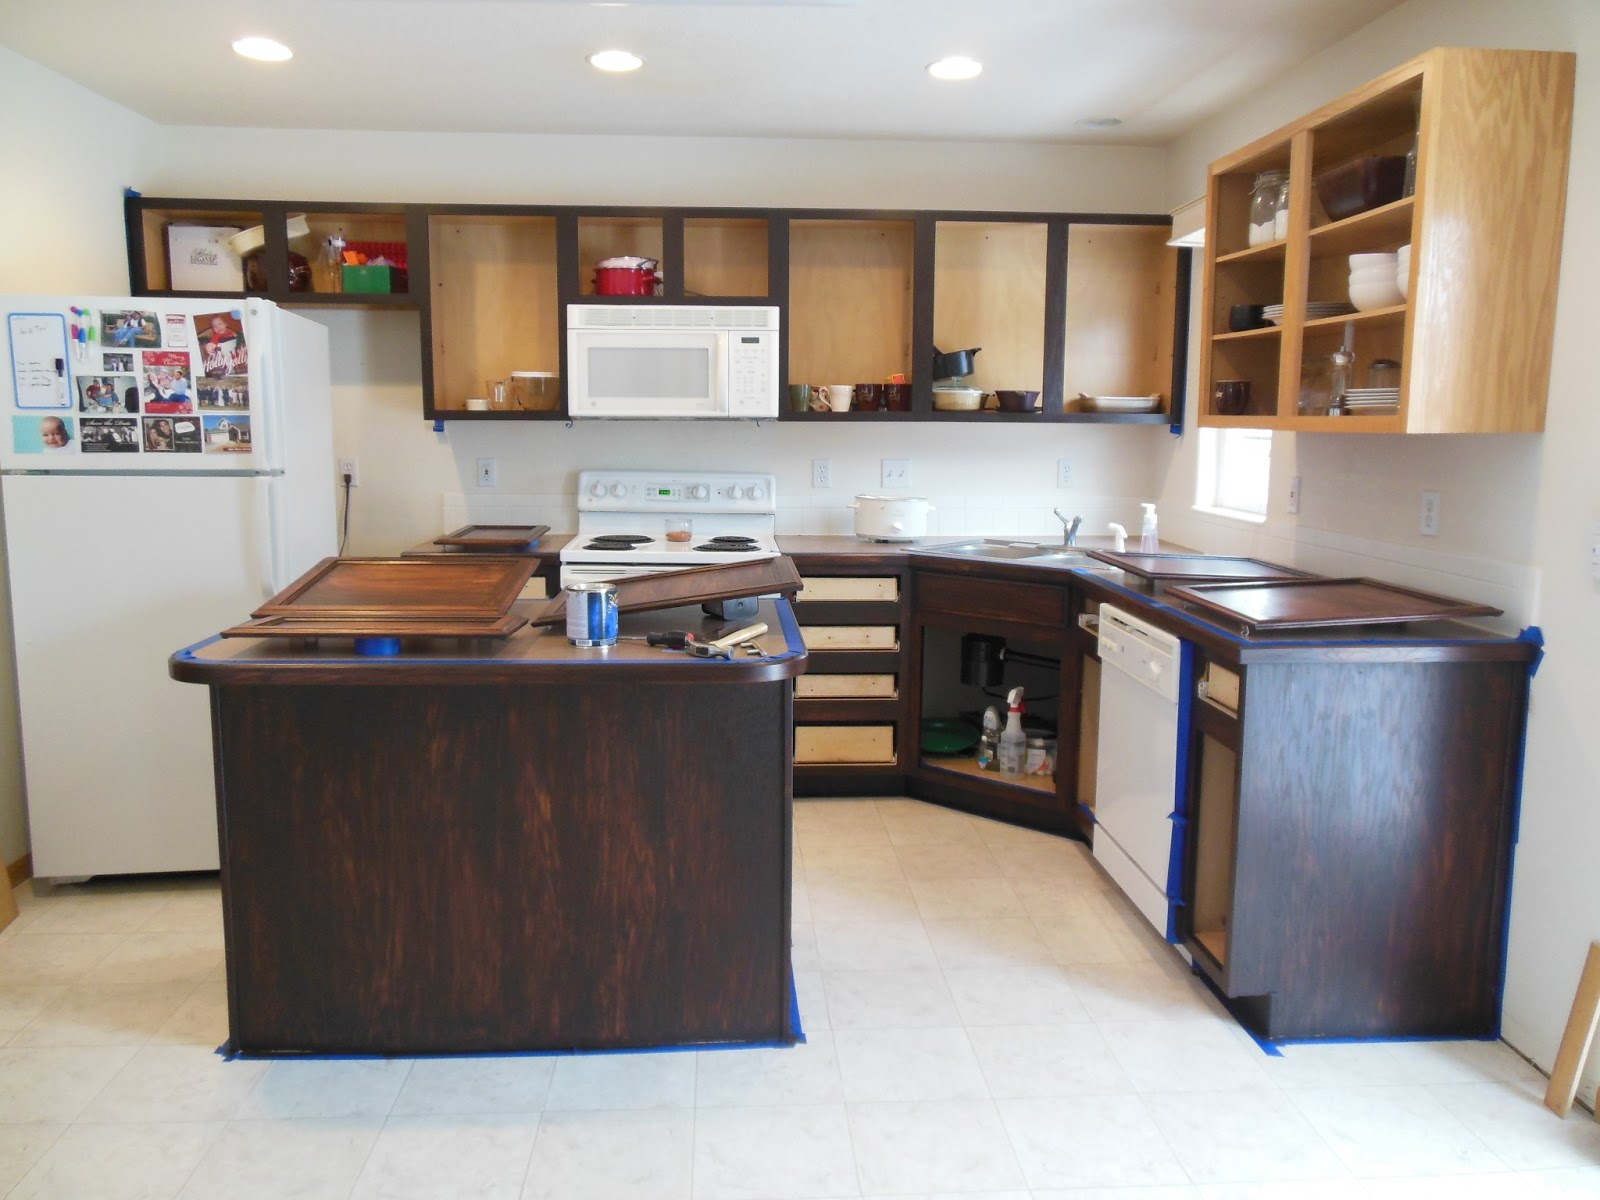 restaining-kitchen-cabinets-gel-stain-photo-9